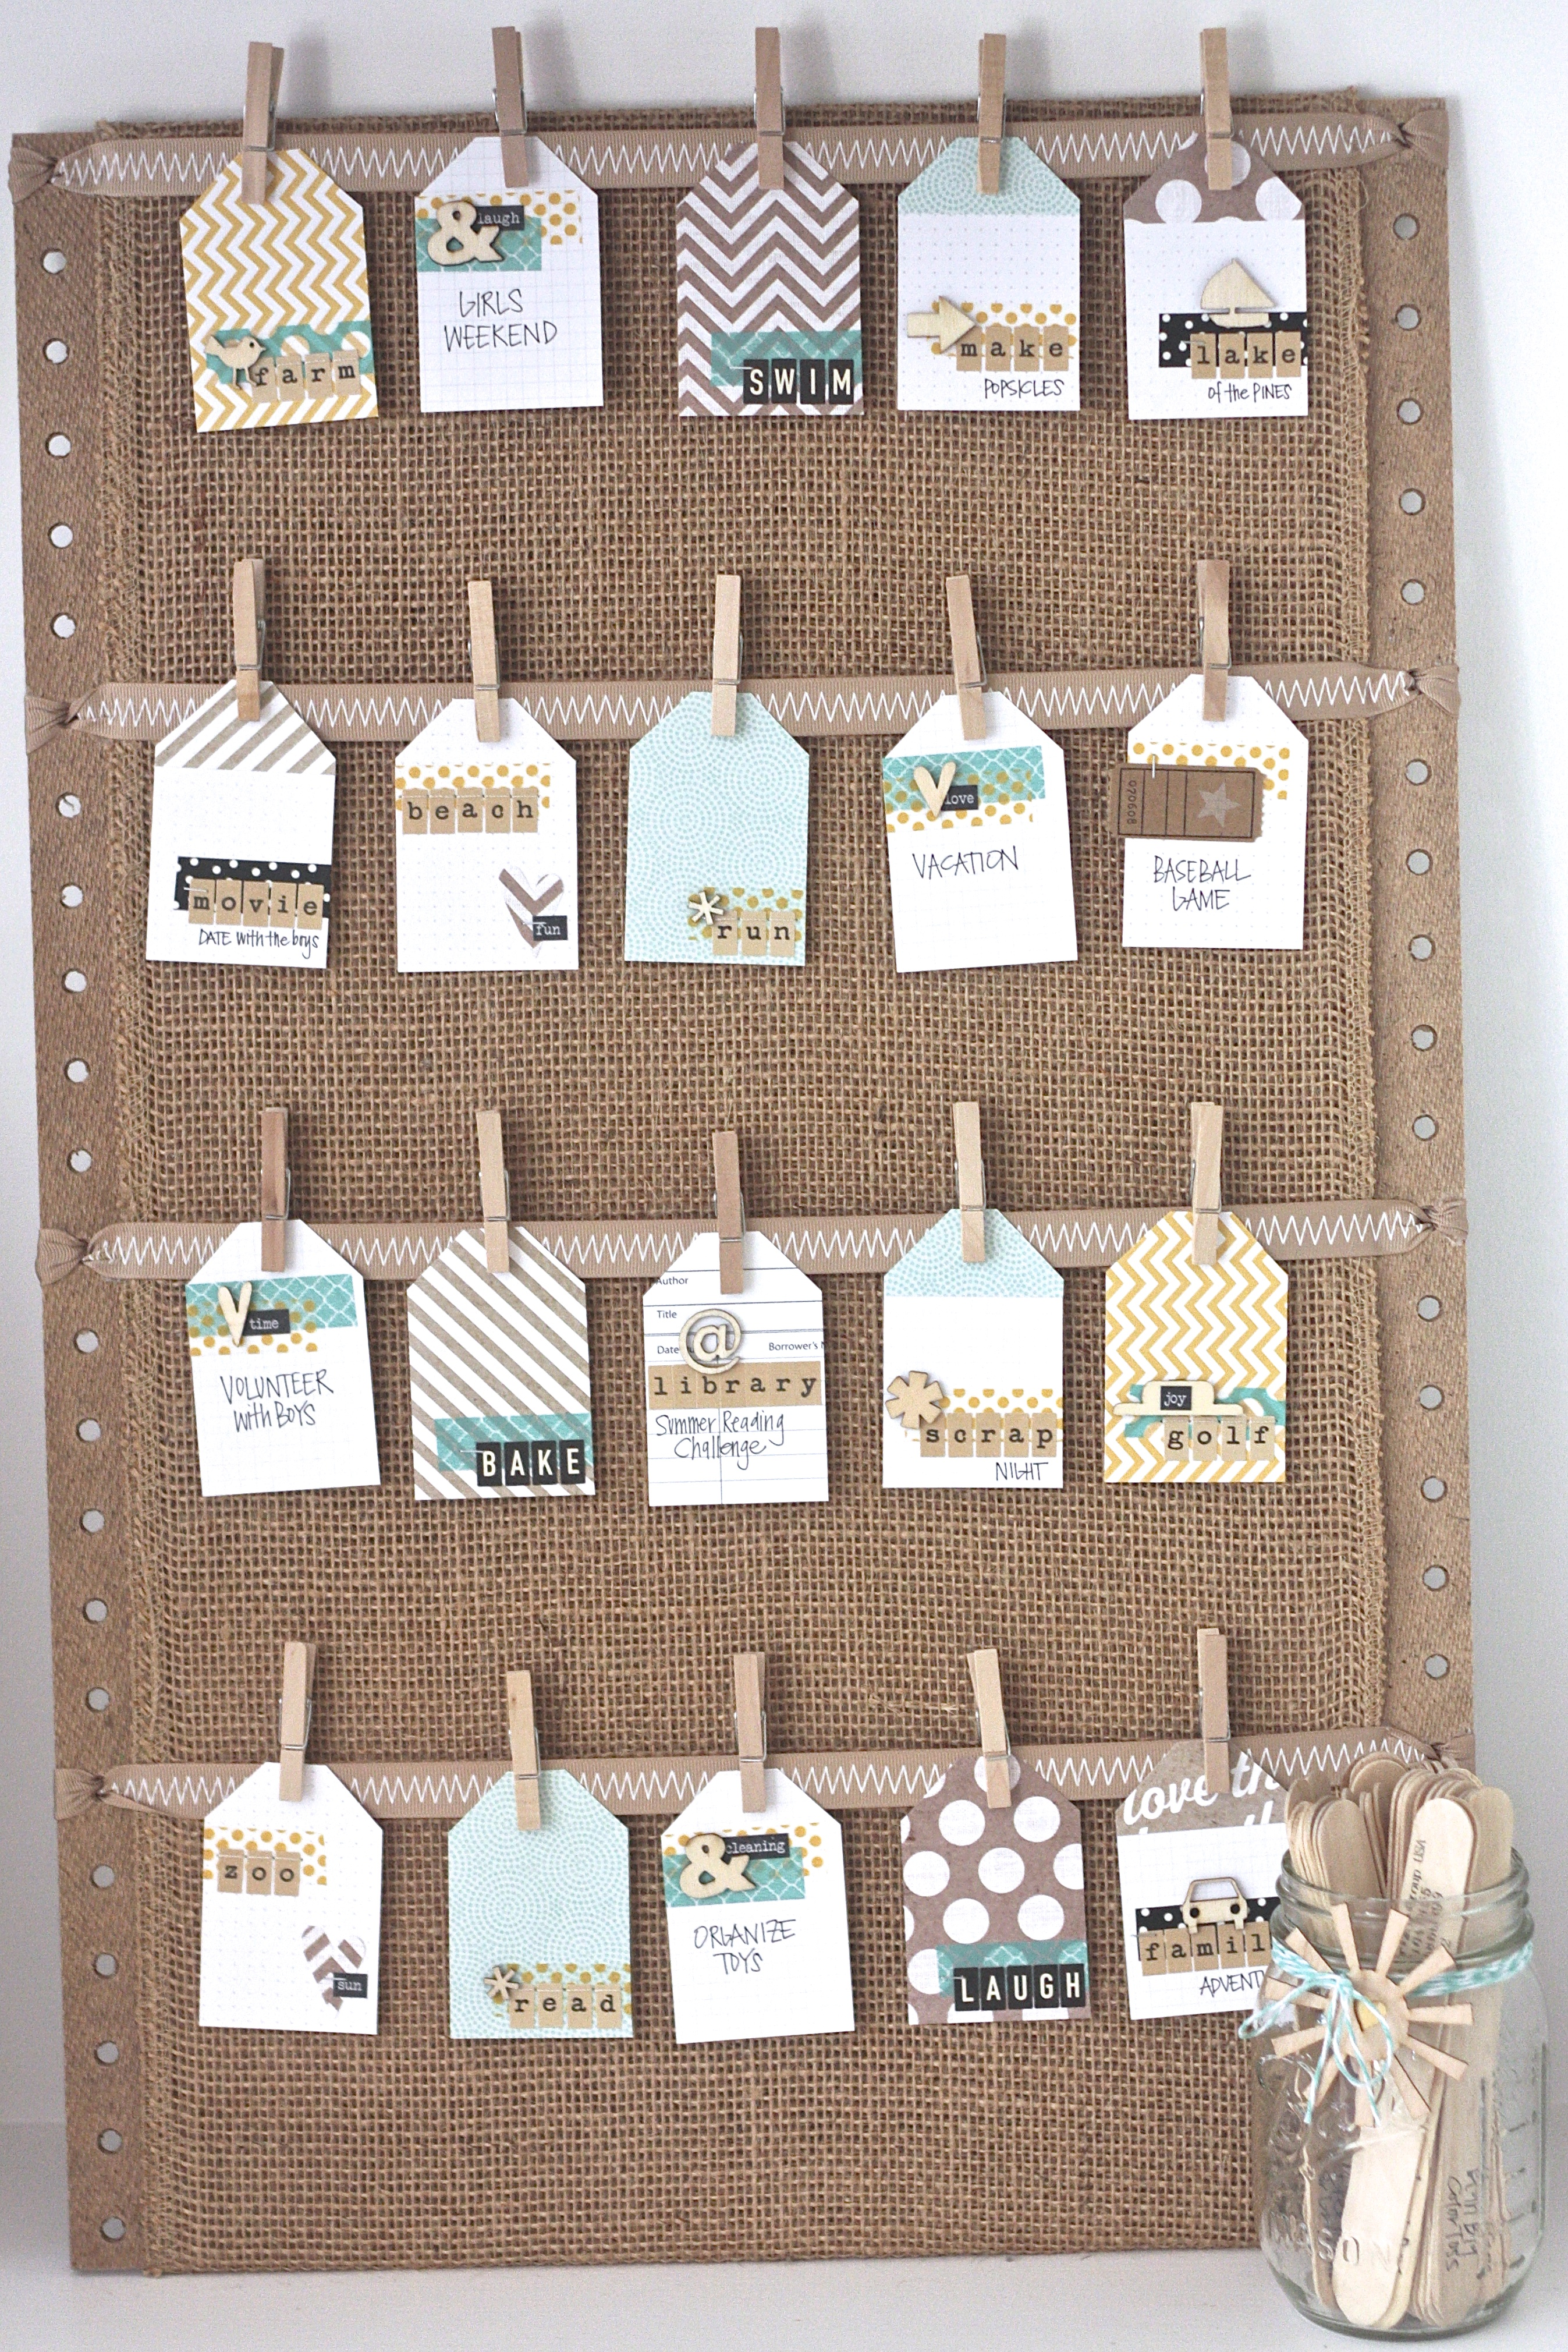 Scrapbook ideas list - Loved And Used The Me And My Best Ideas Pocket Pages Journal Cards The Colors Were Perfect Kept Embellishments Simple With Wood Veneers And Washi Tape